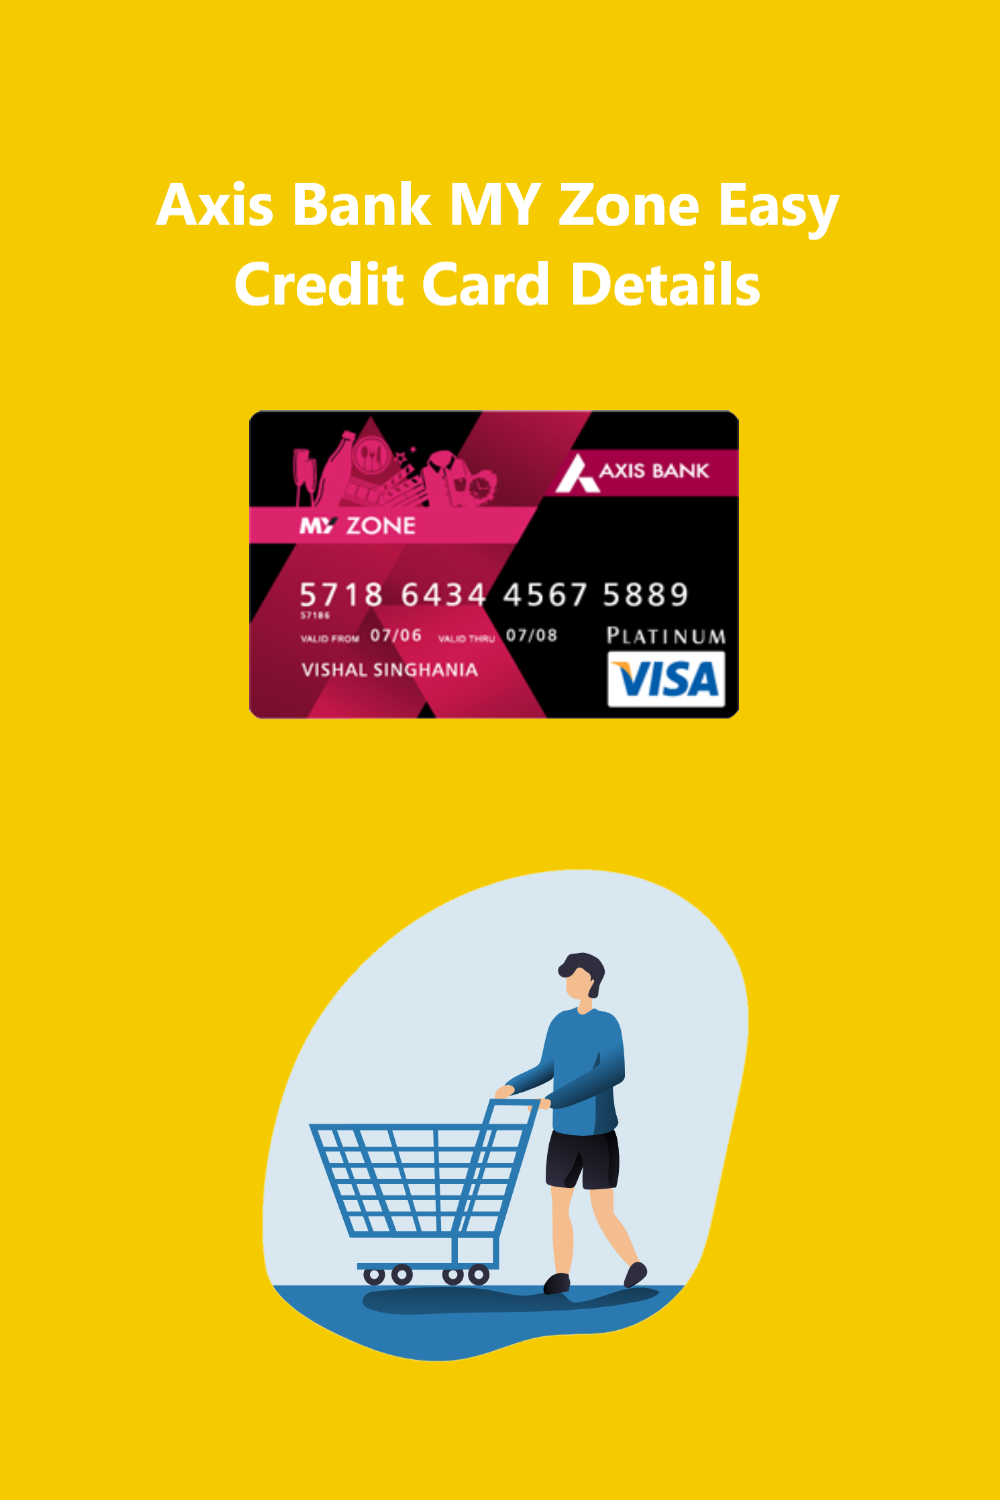 Axis Bank MY Zone Easy Credit Card: Check Offers & Benefits